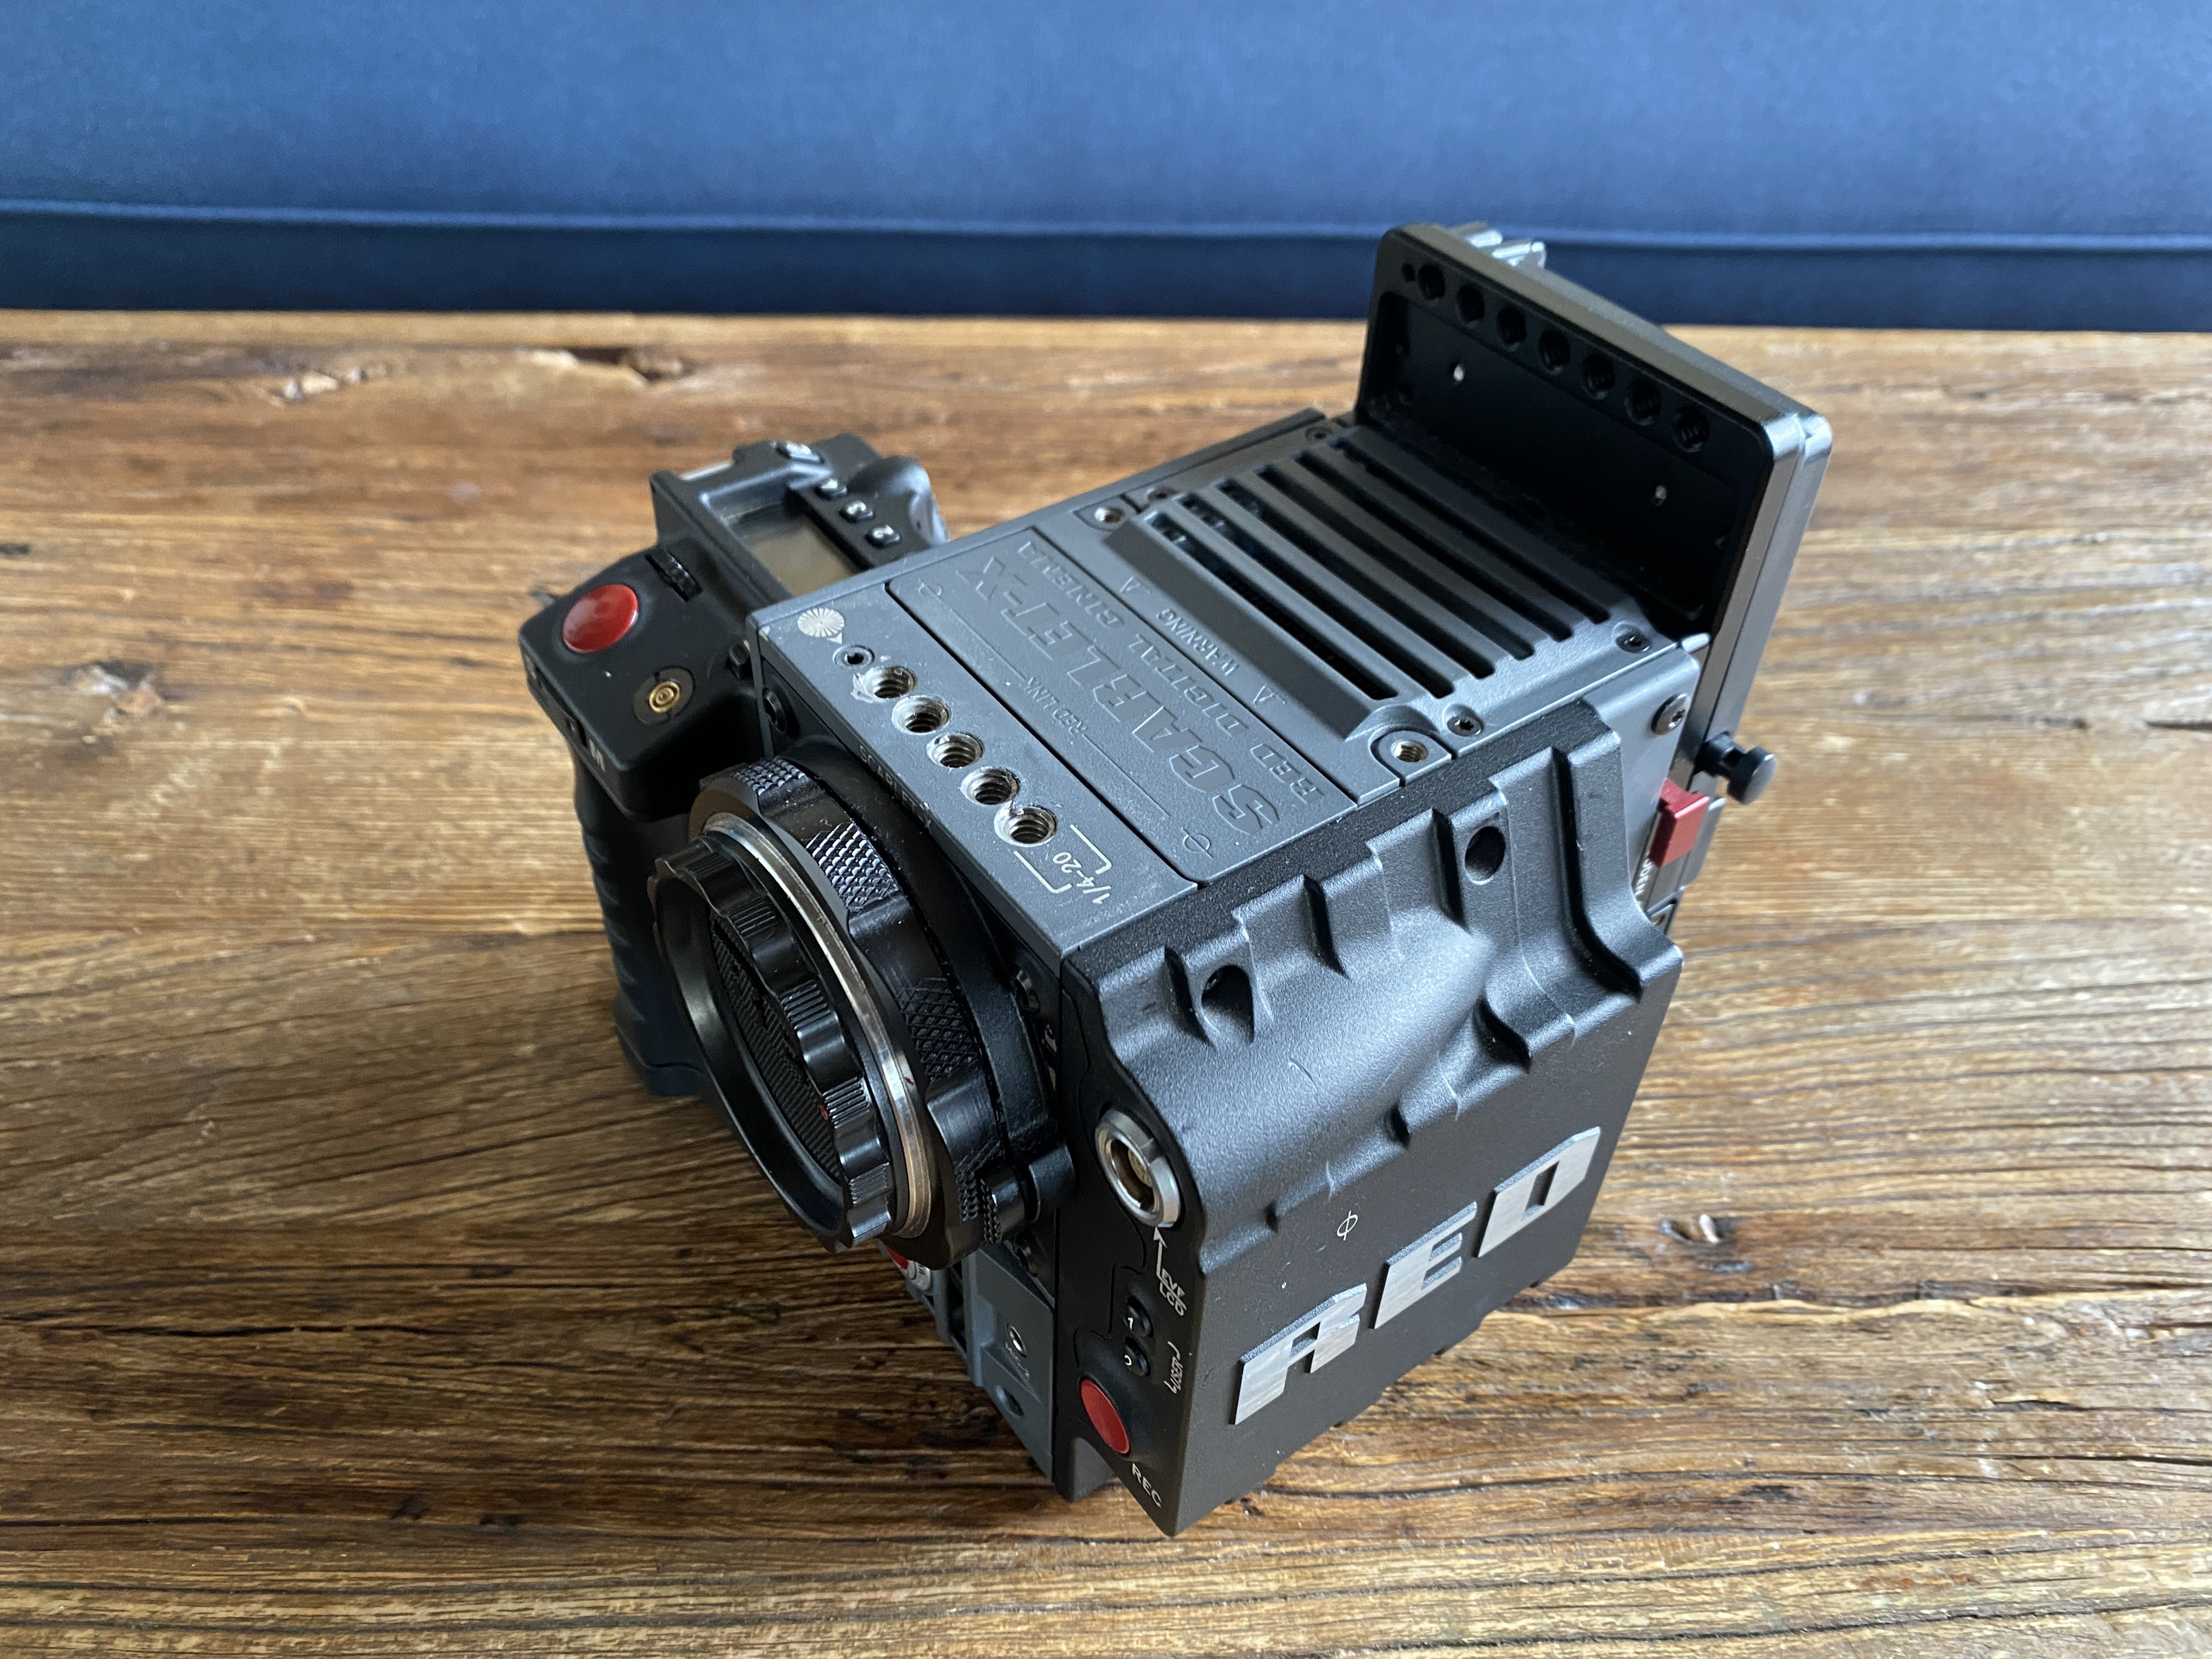 Red Scarlet Mysterium -X